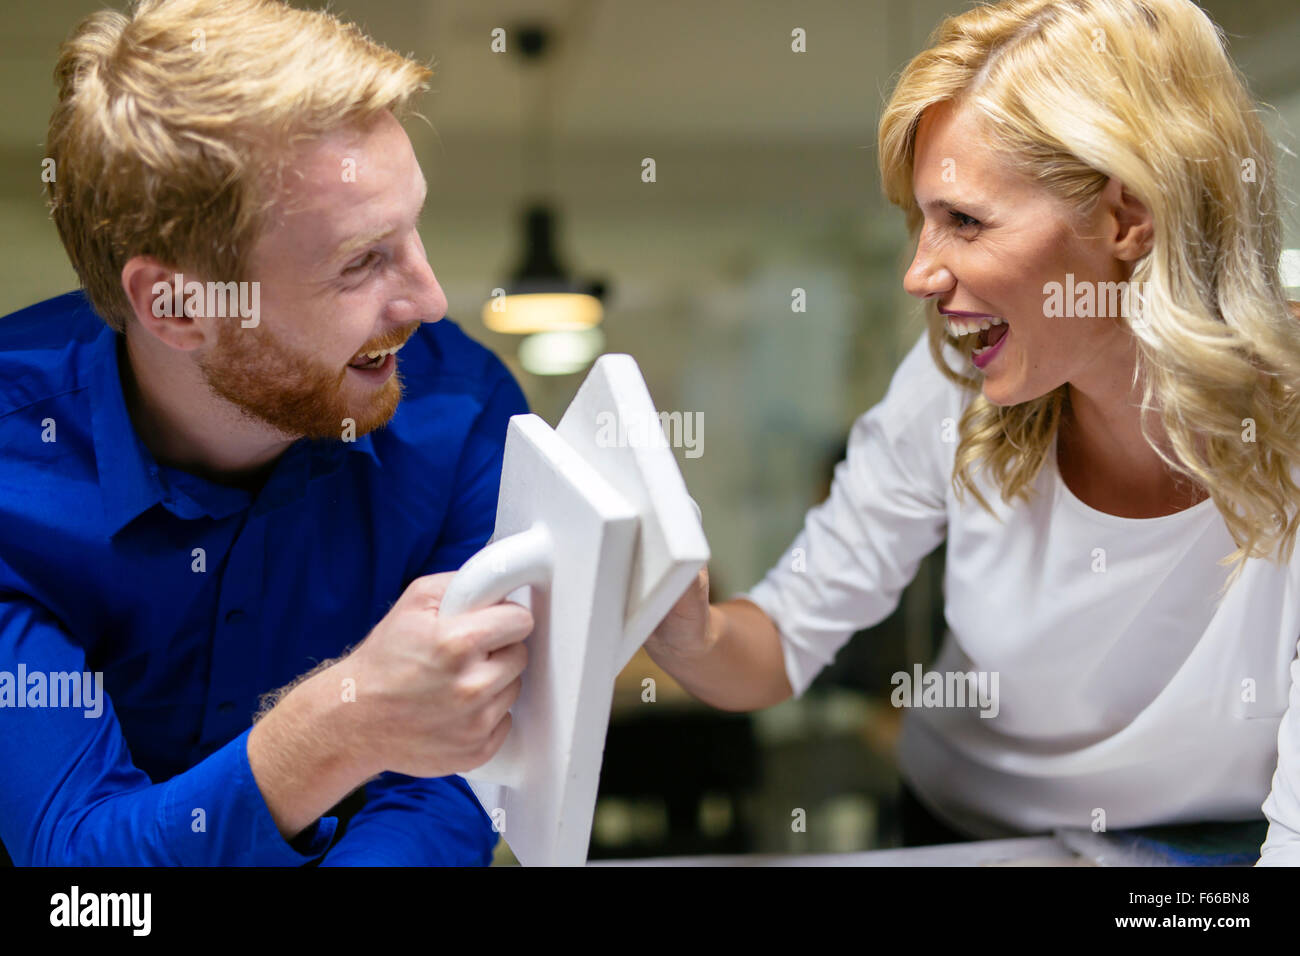 Collaboration and determination leads to success - Stock Image